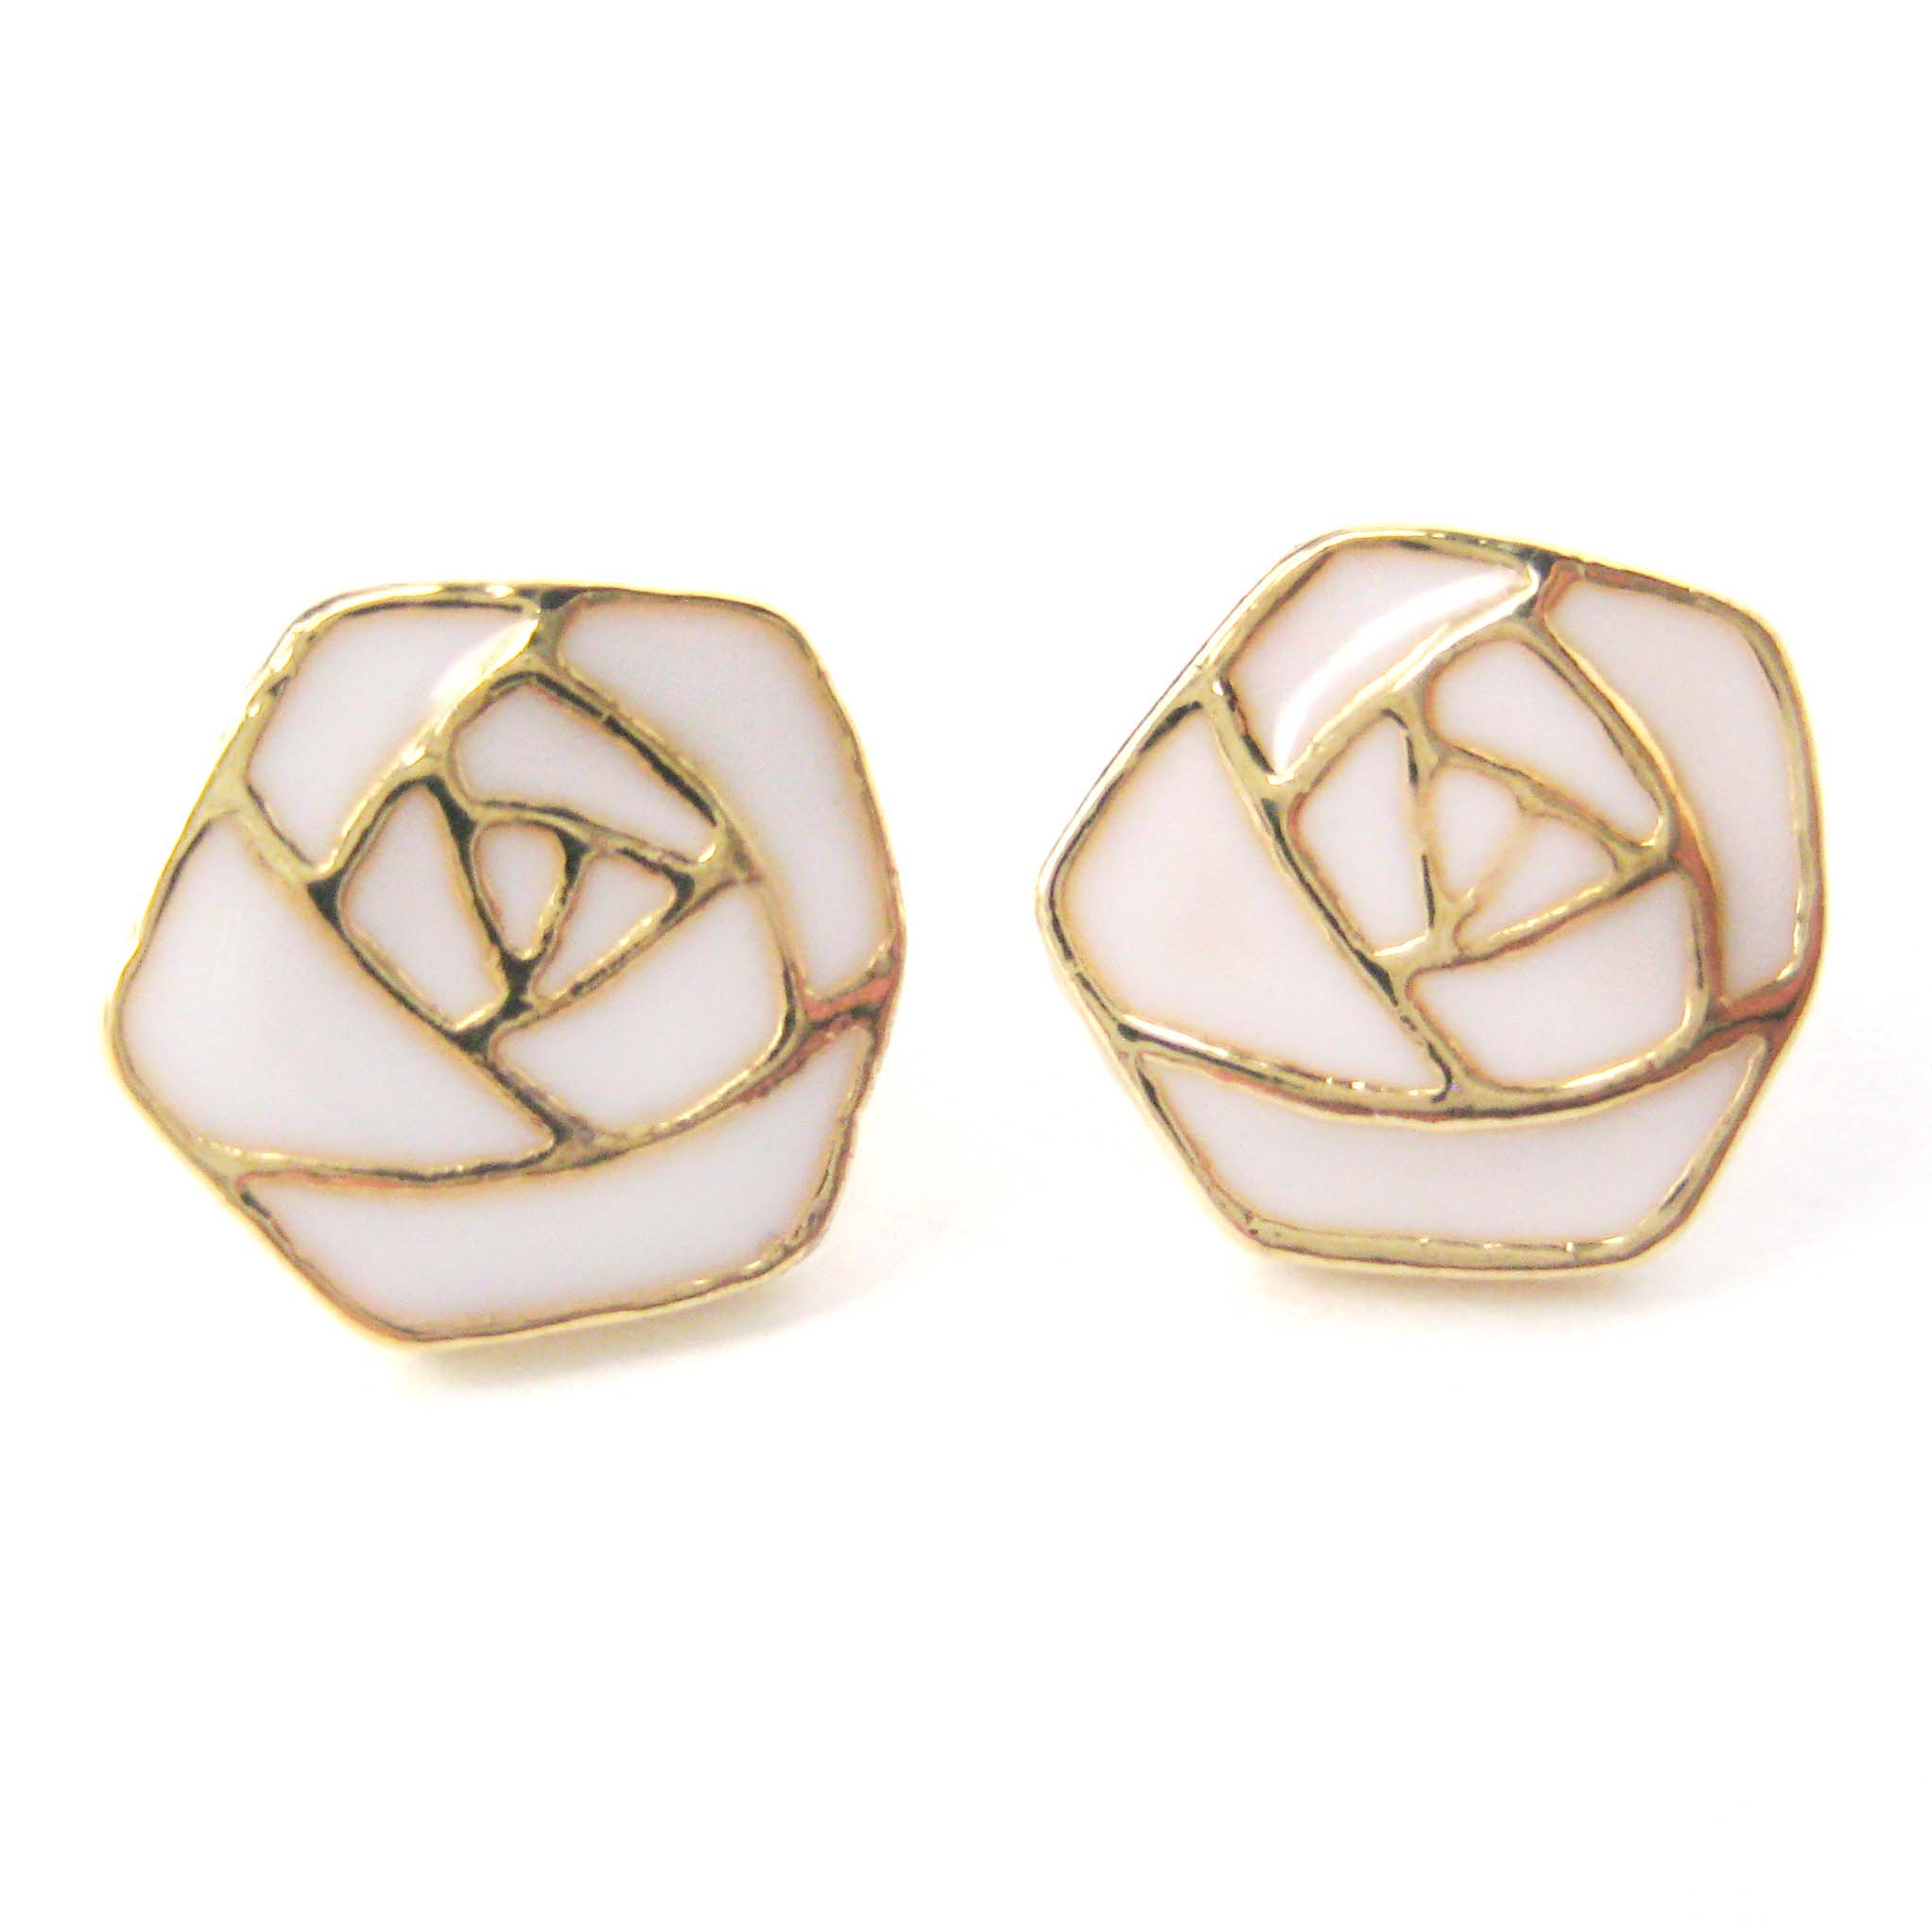 gucci earrings jewellery running gg diamond gold white stud